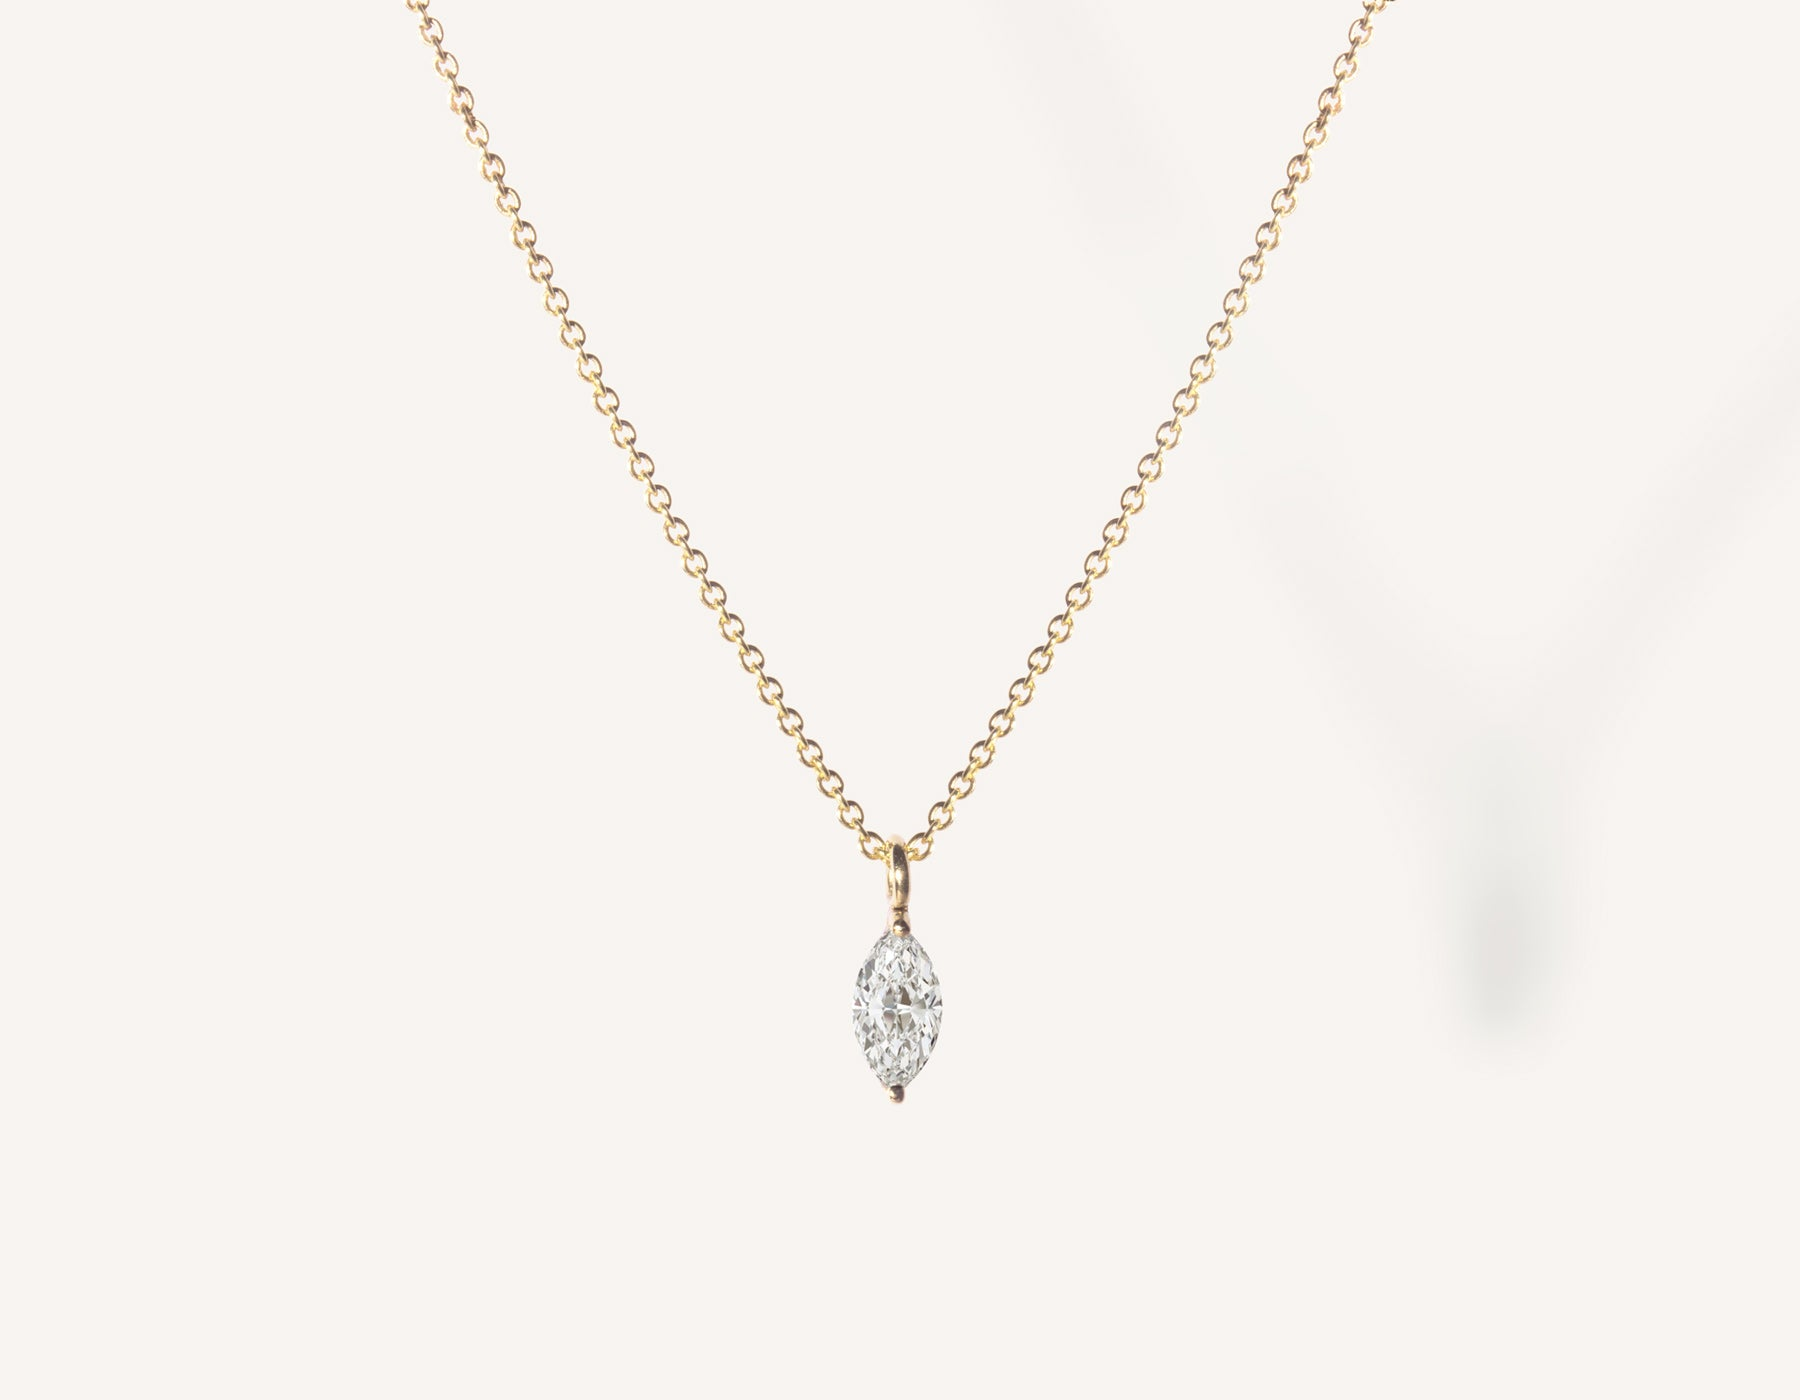 vrai & oro 14k solid gold dainty Marquise Diamond Necklace on minimalist oval link chain, 14K Yellow Gold